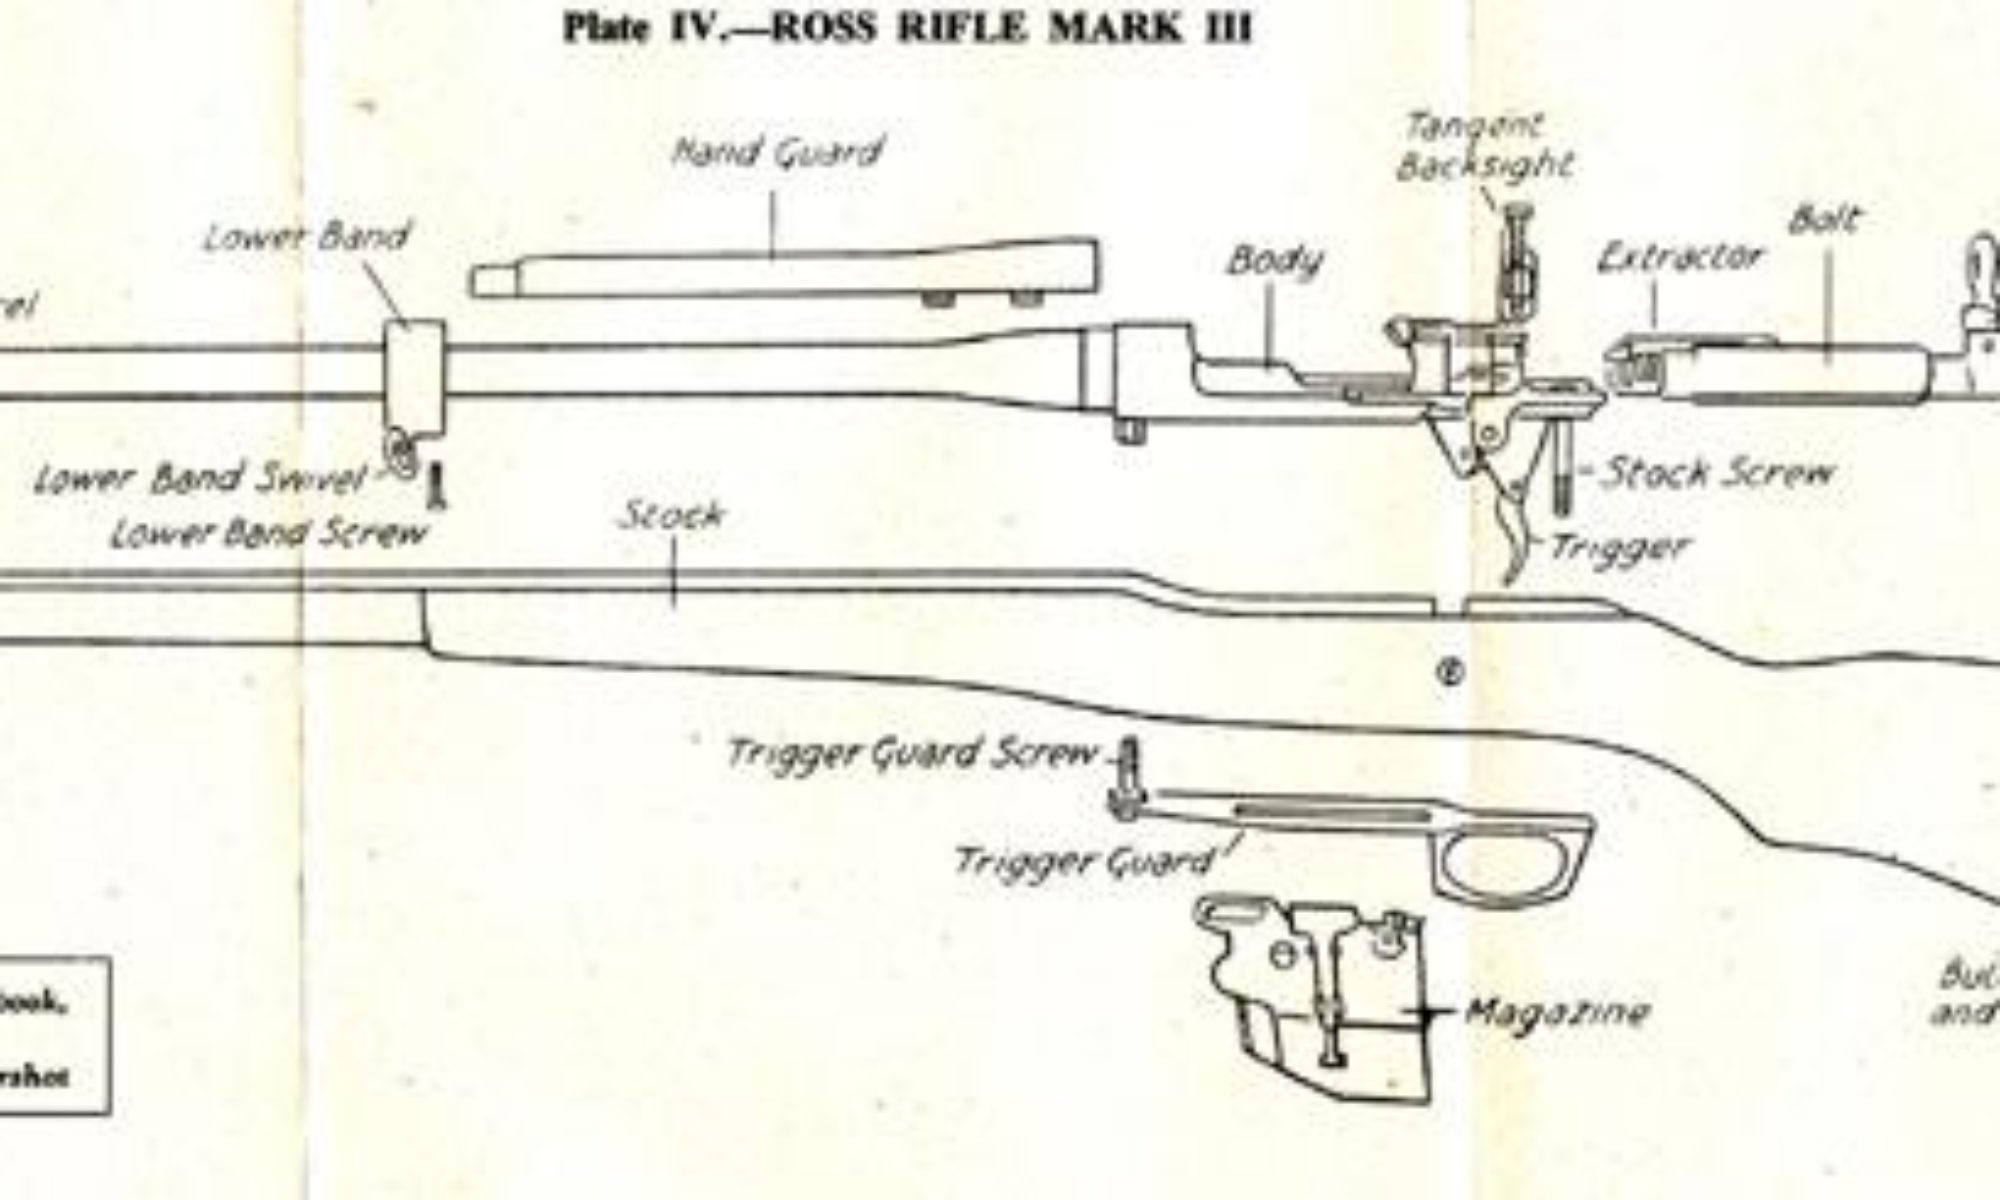 Canadian Historical Arms Society